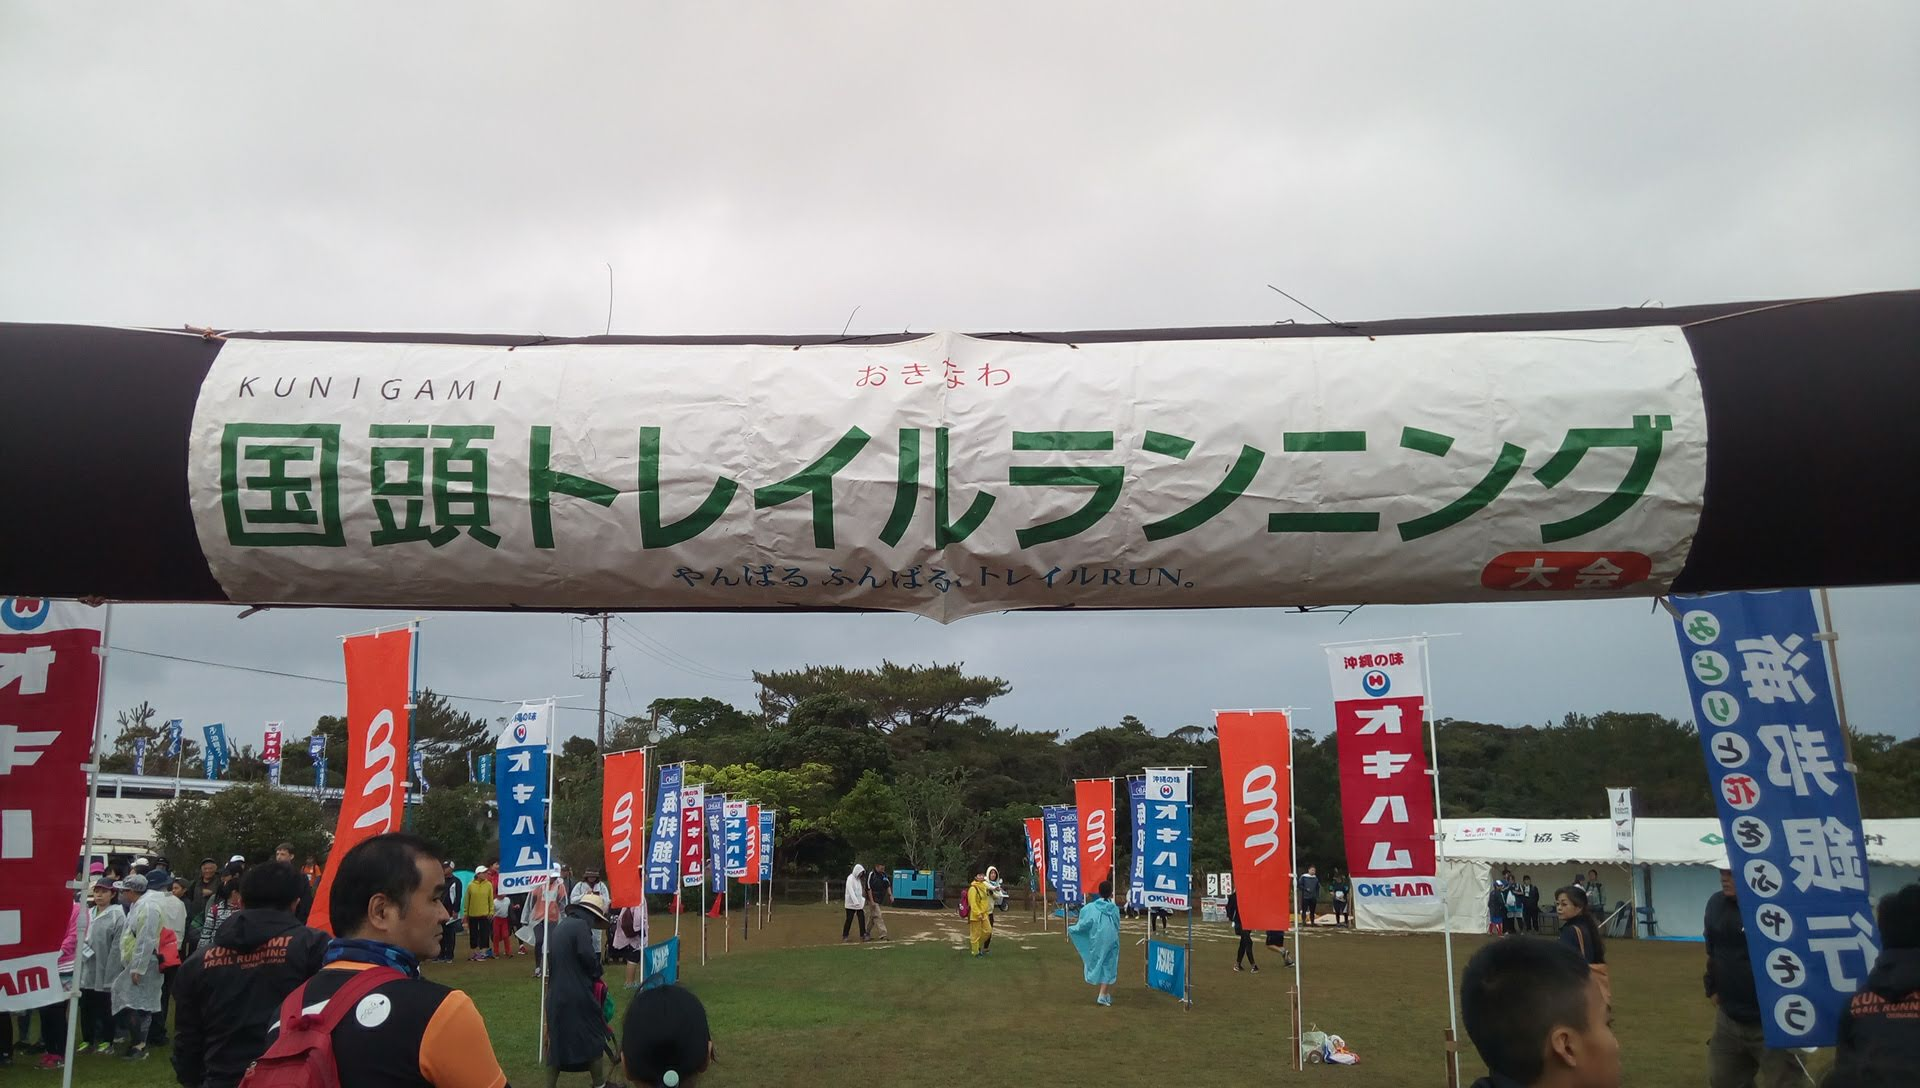 I participated in the Kunigami trail walk where we can fully enjoy the subtropical forest in Okinawa Yanbaru